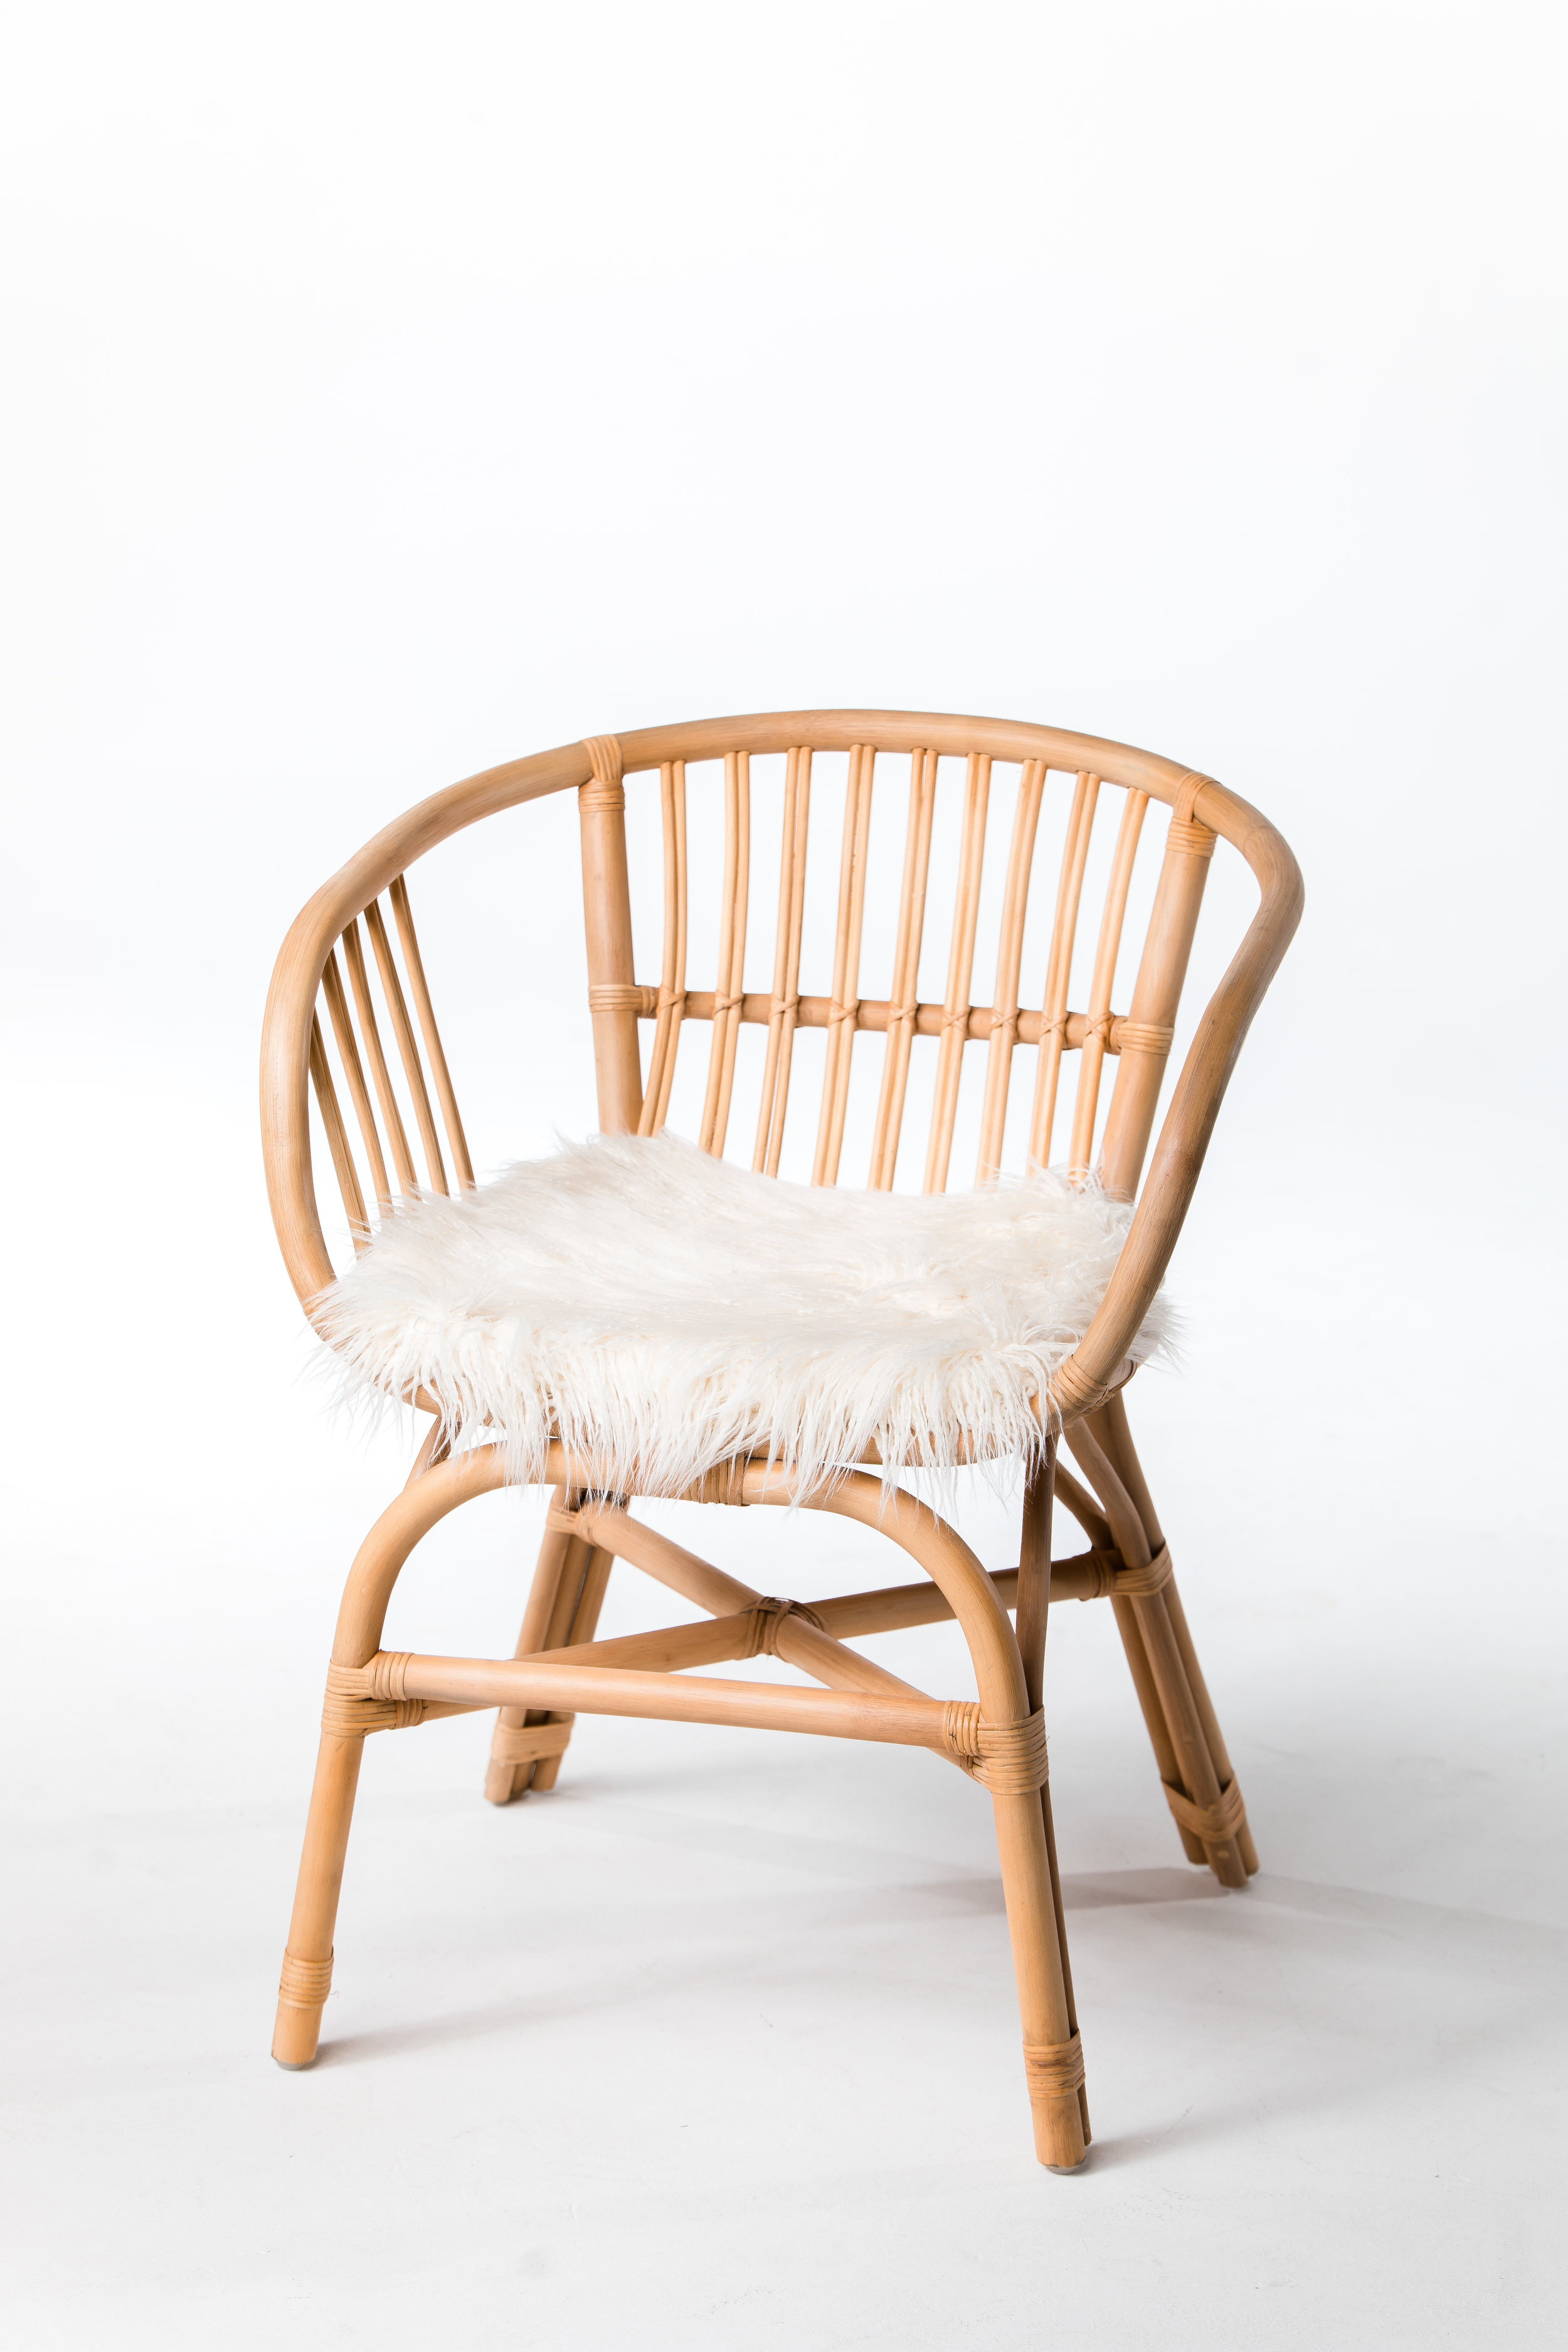 WICKER RATTAN CHAIR